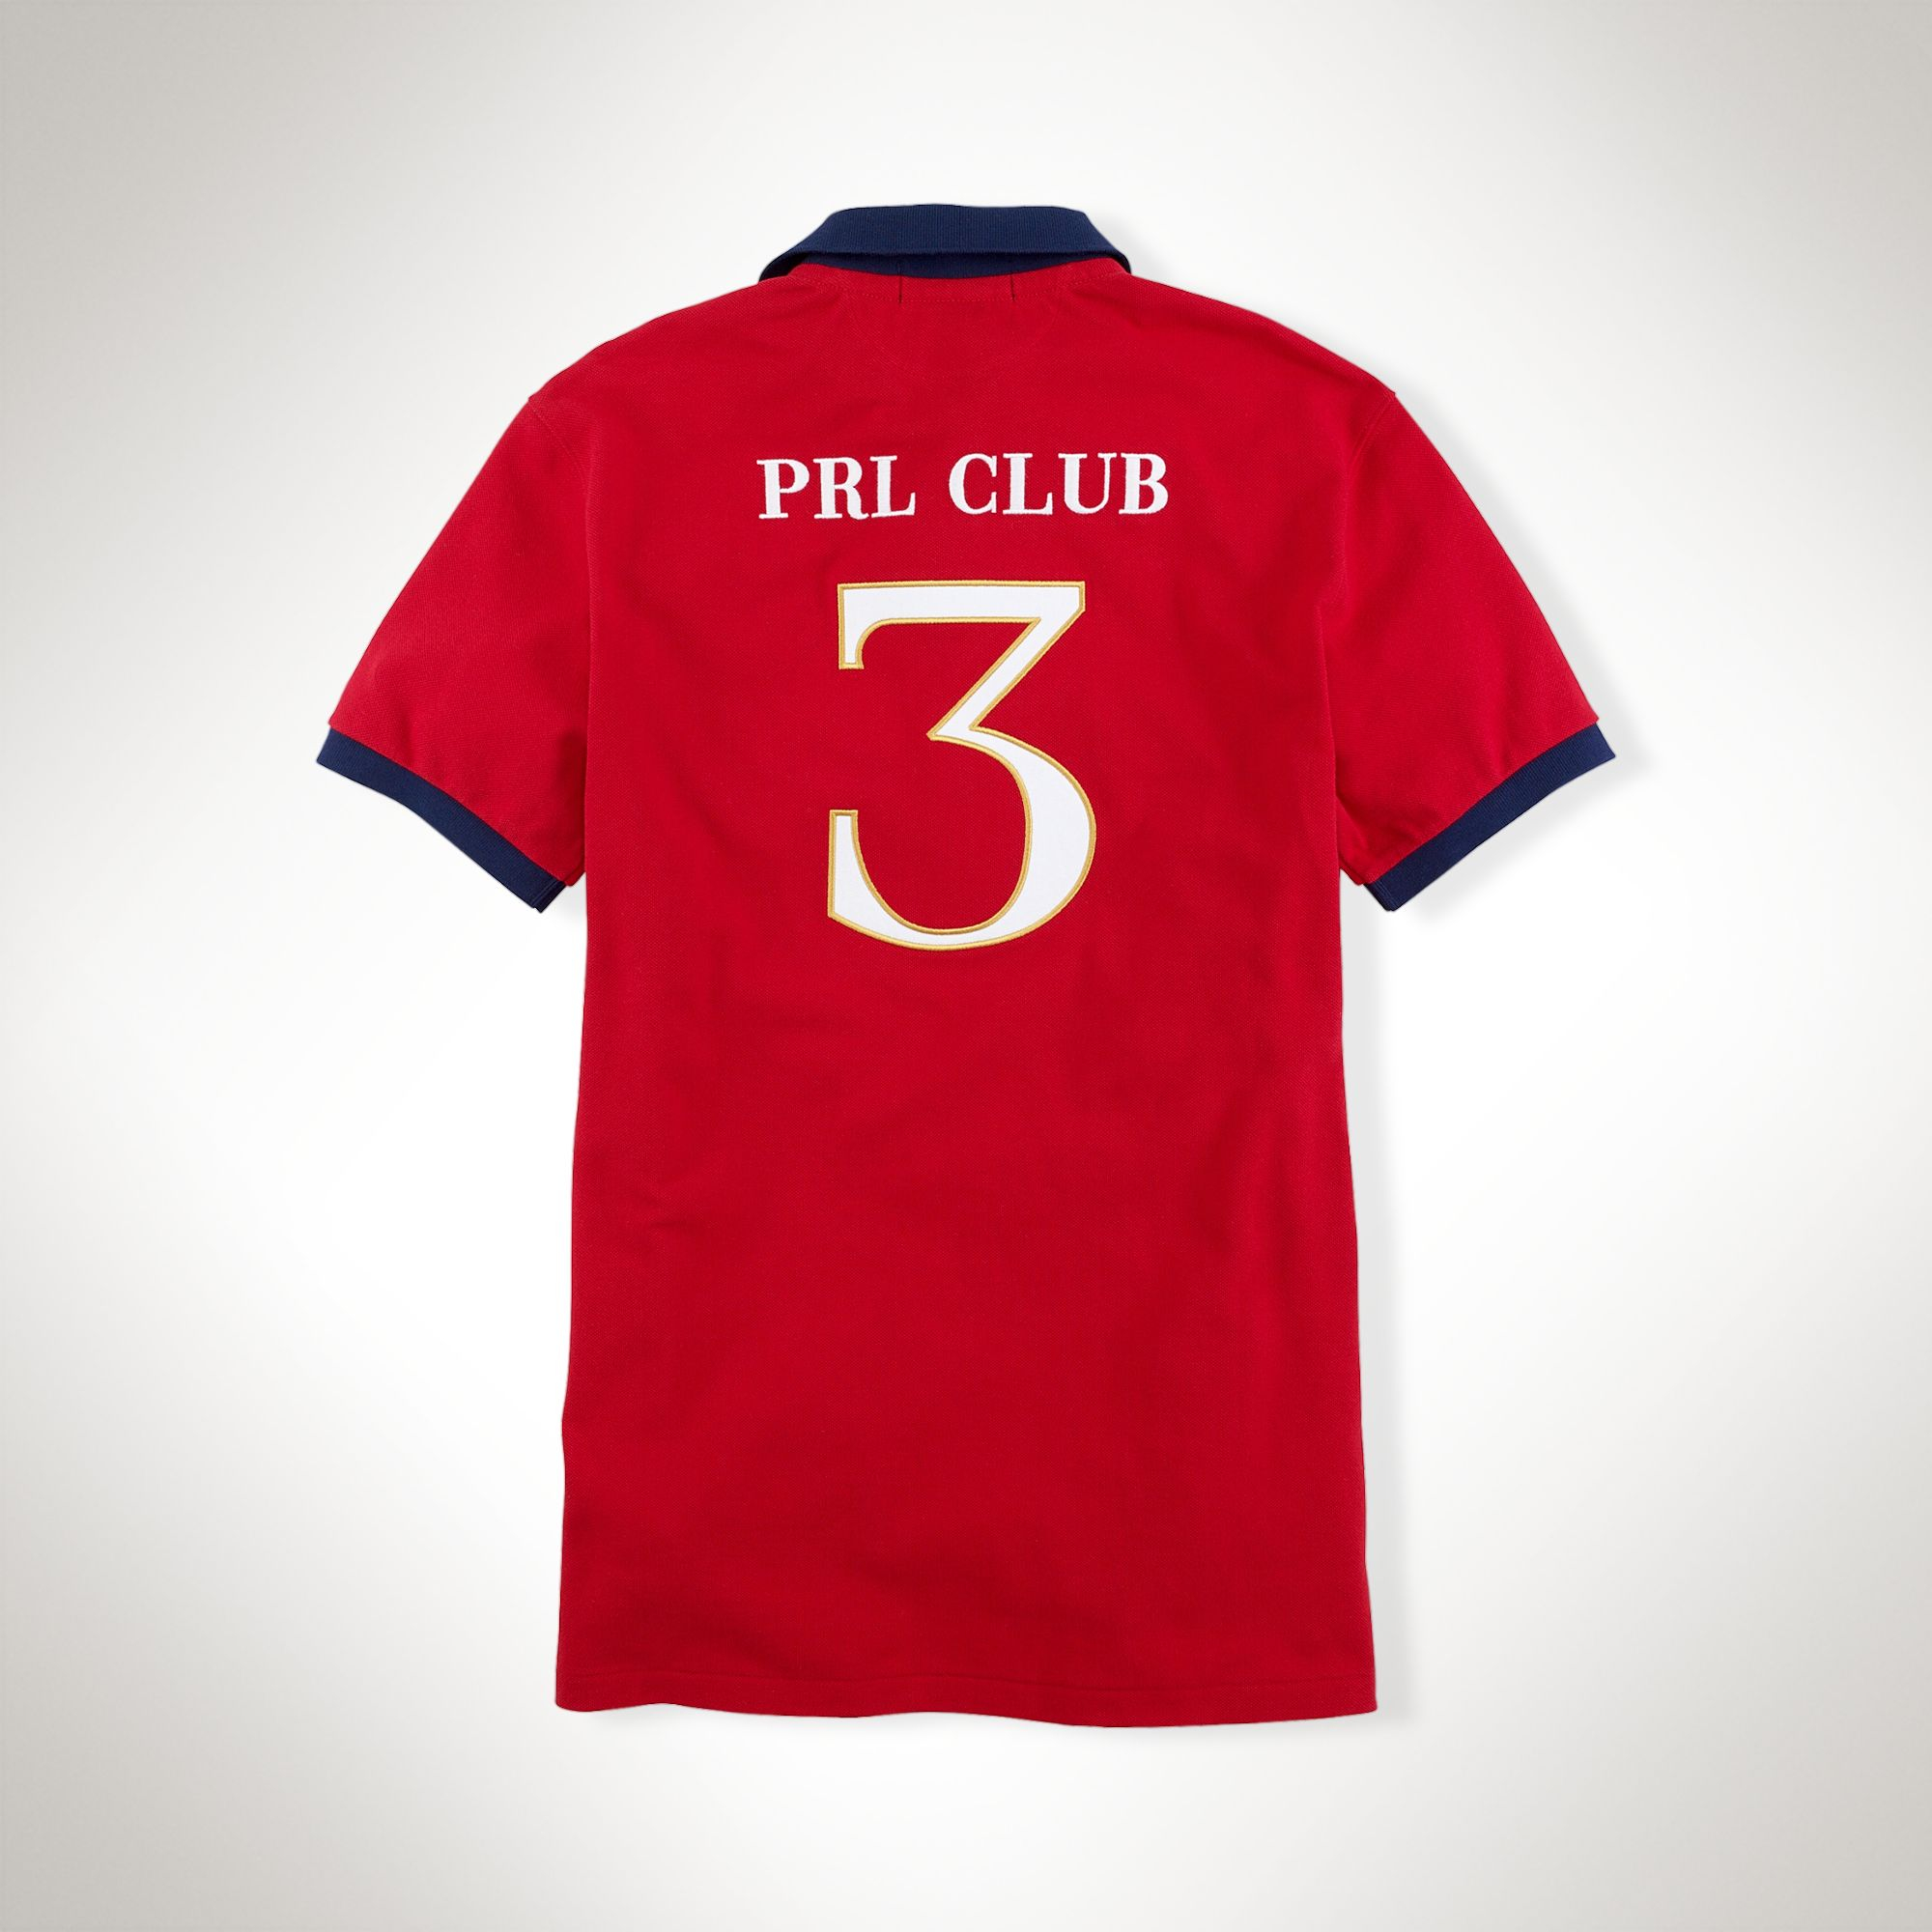 Polo Ralph Lauren Customfit Prl Club Polo In Red For Men